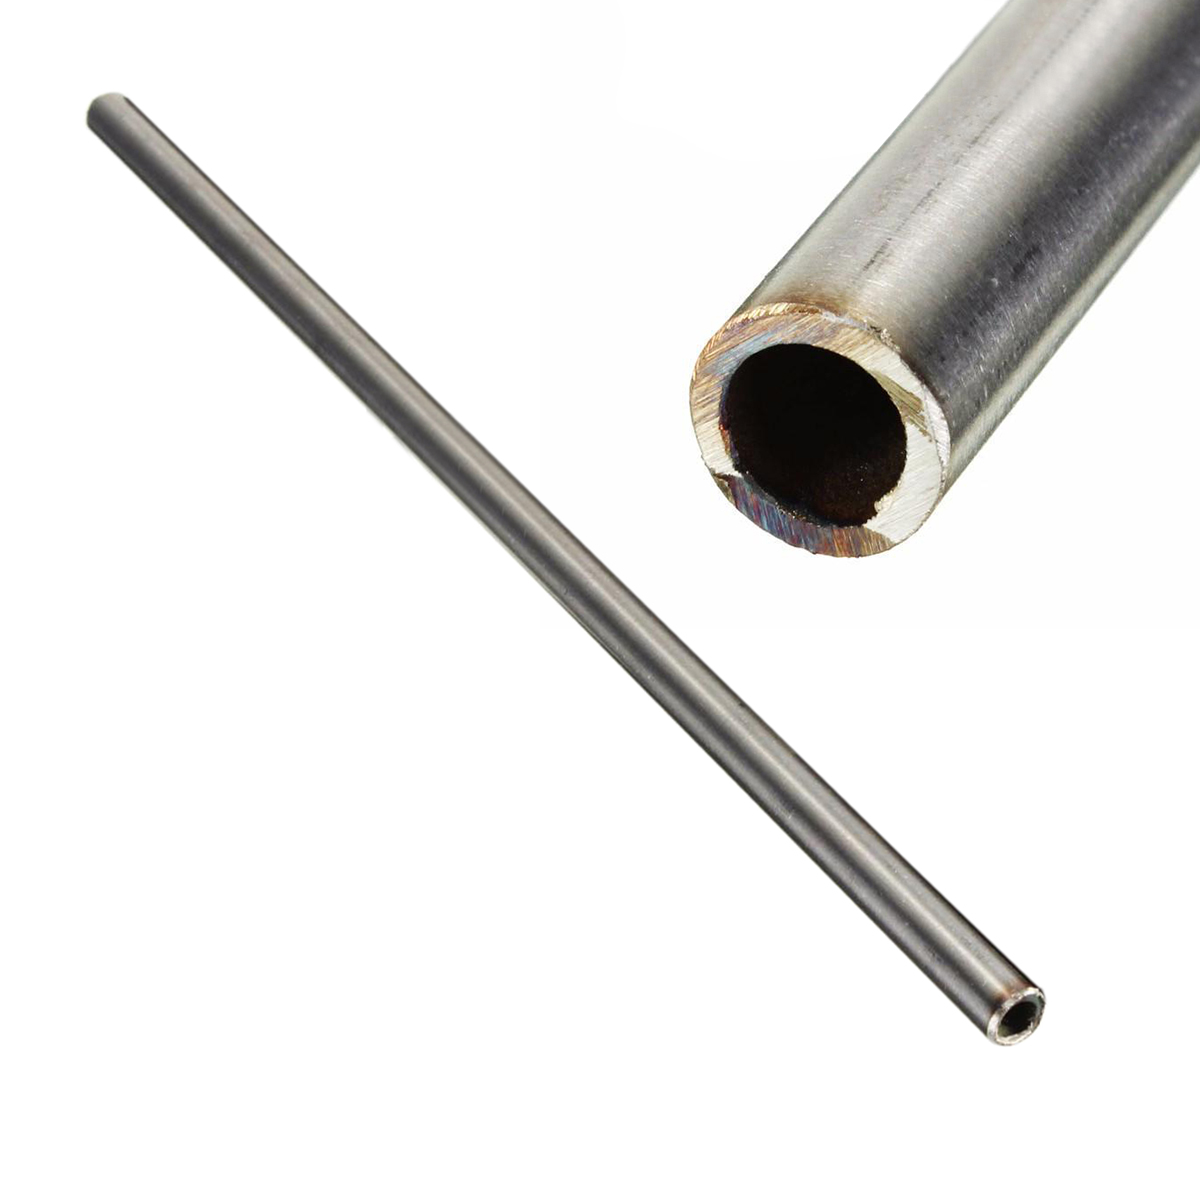 1pc New 304 Stainless Steel Capillary Tube 12mm OD 10mm ID 250mm Length Silver For Industry Tool 5pcs 304 stainless steel capillary tube 3mm od 2mm id 250mm length silver for hardware accessories